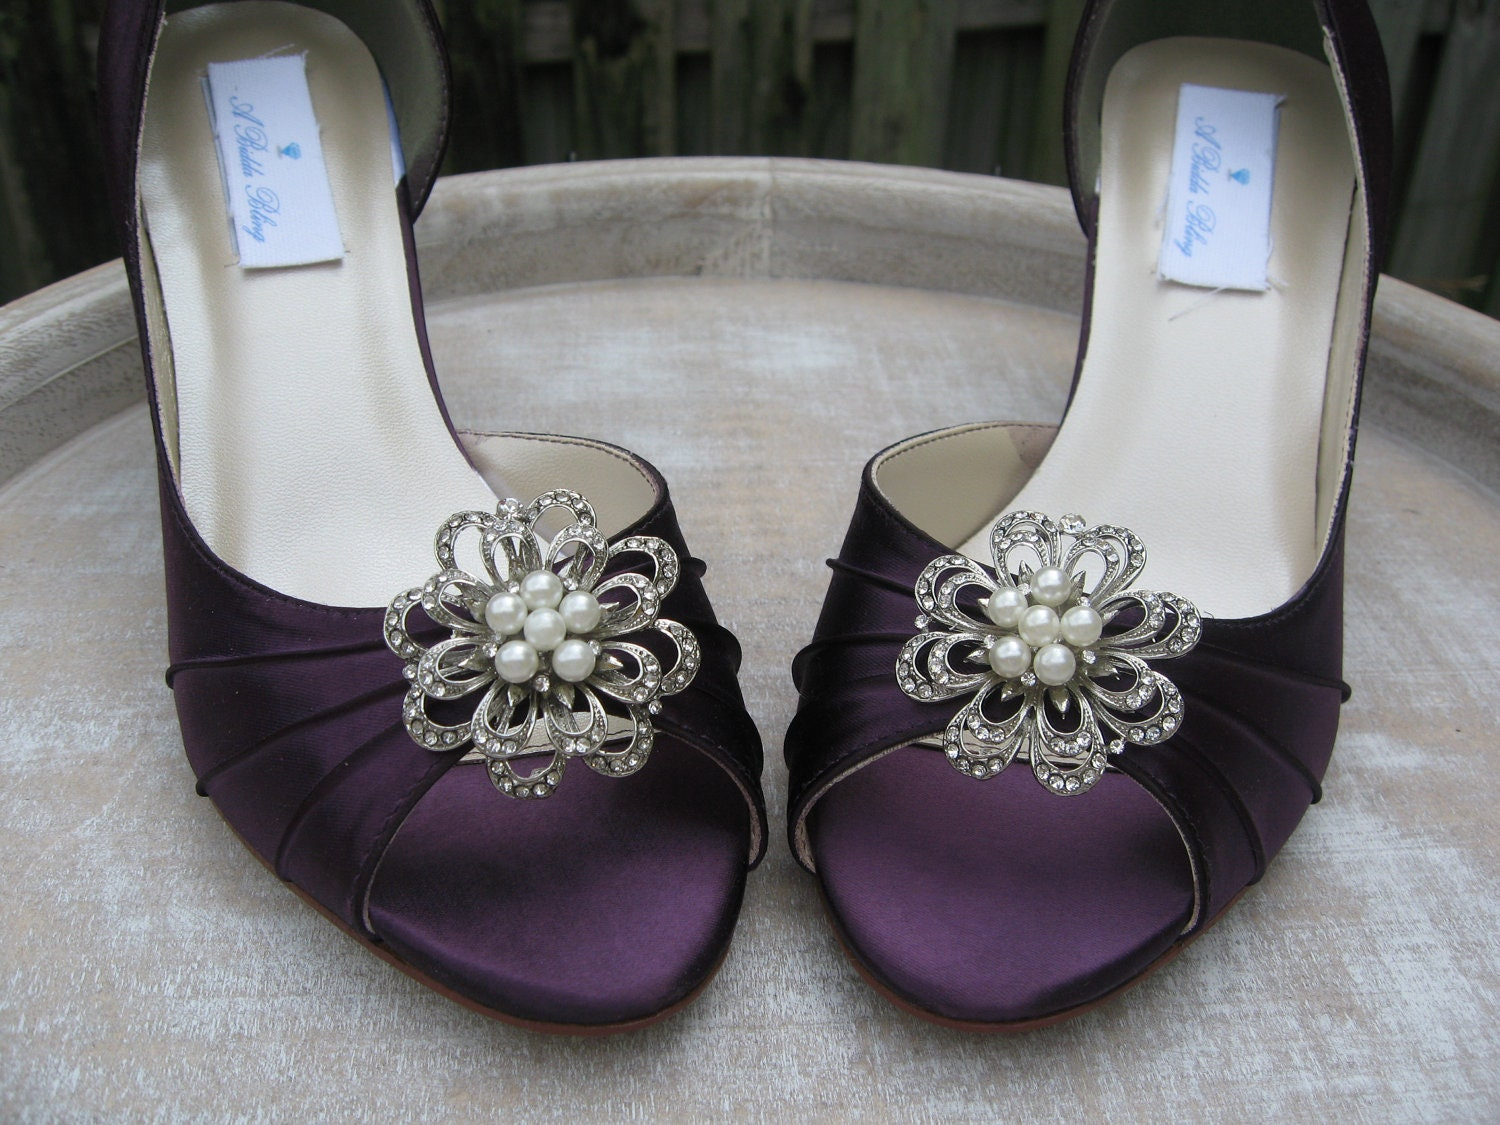 Vintage inspired purple eggplant bridal shoes with pearls and crystal